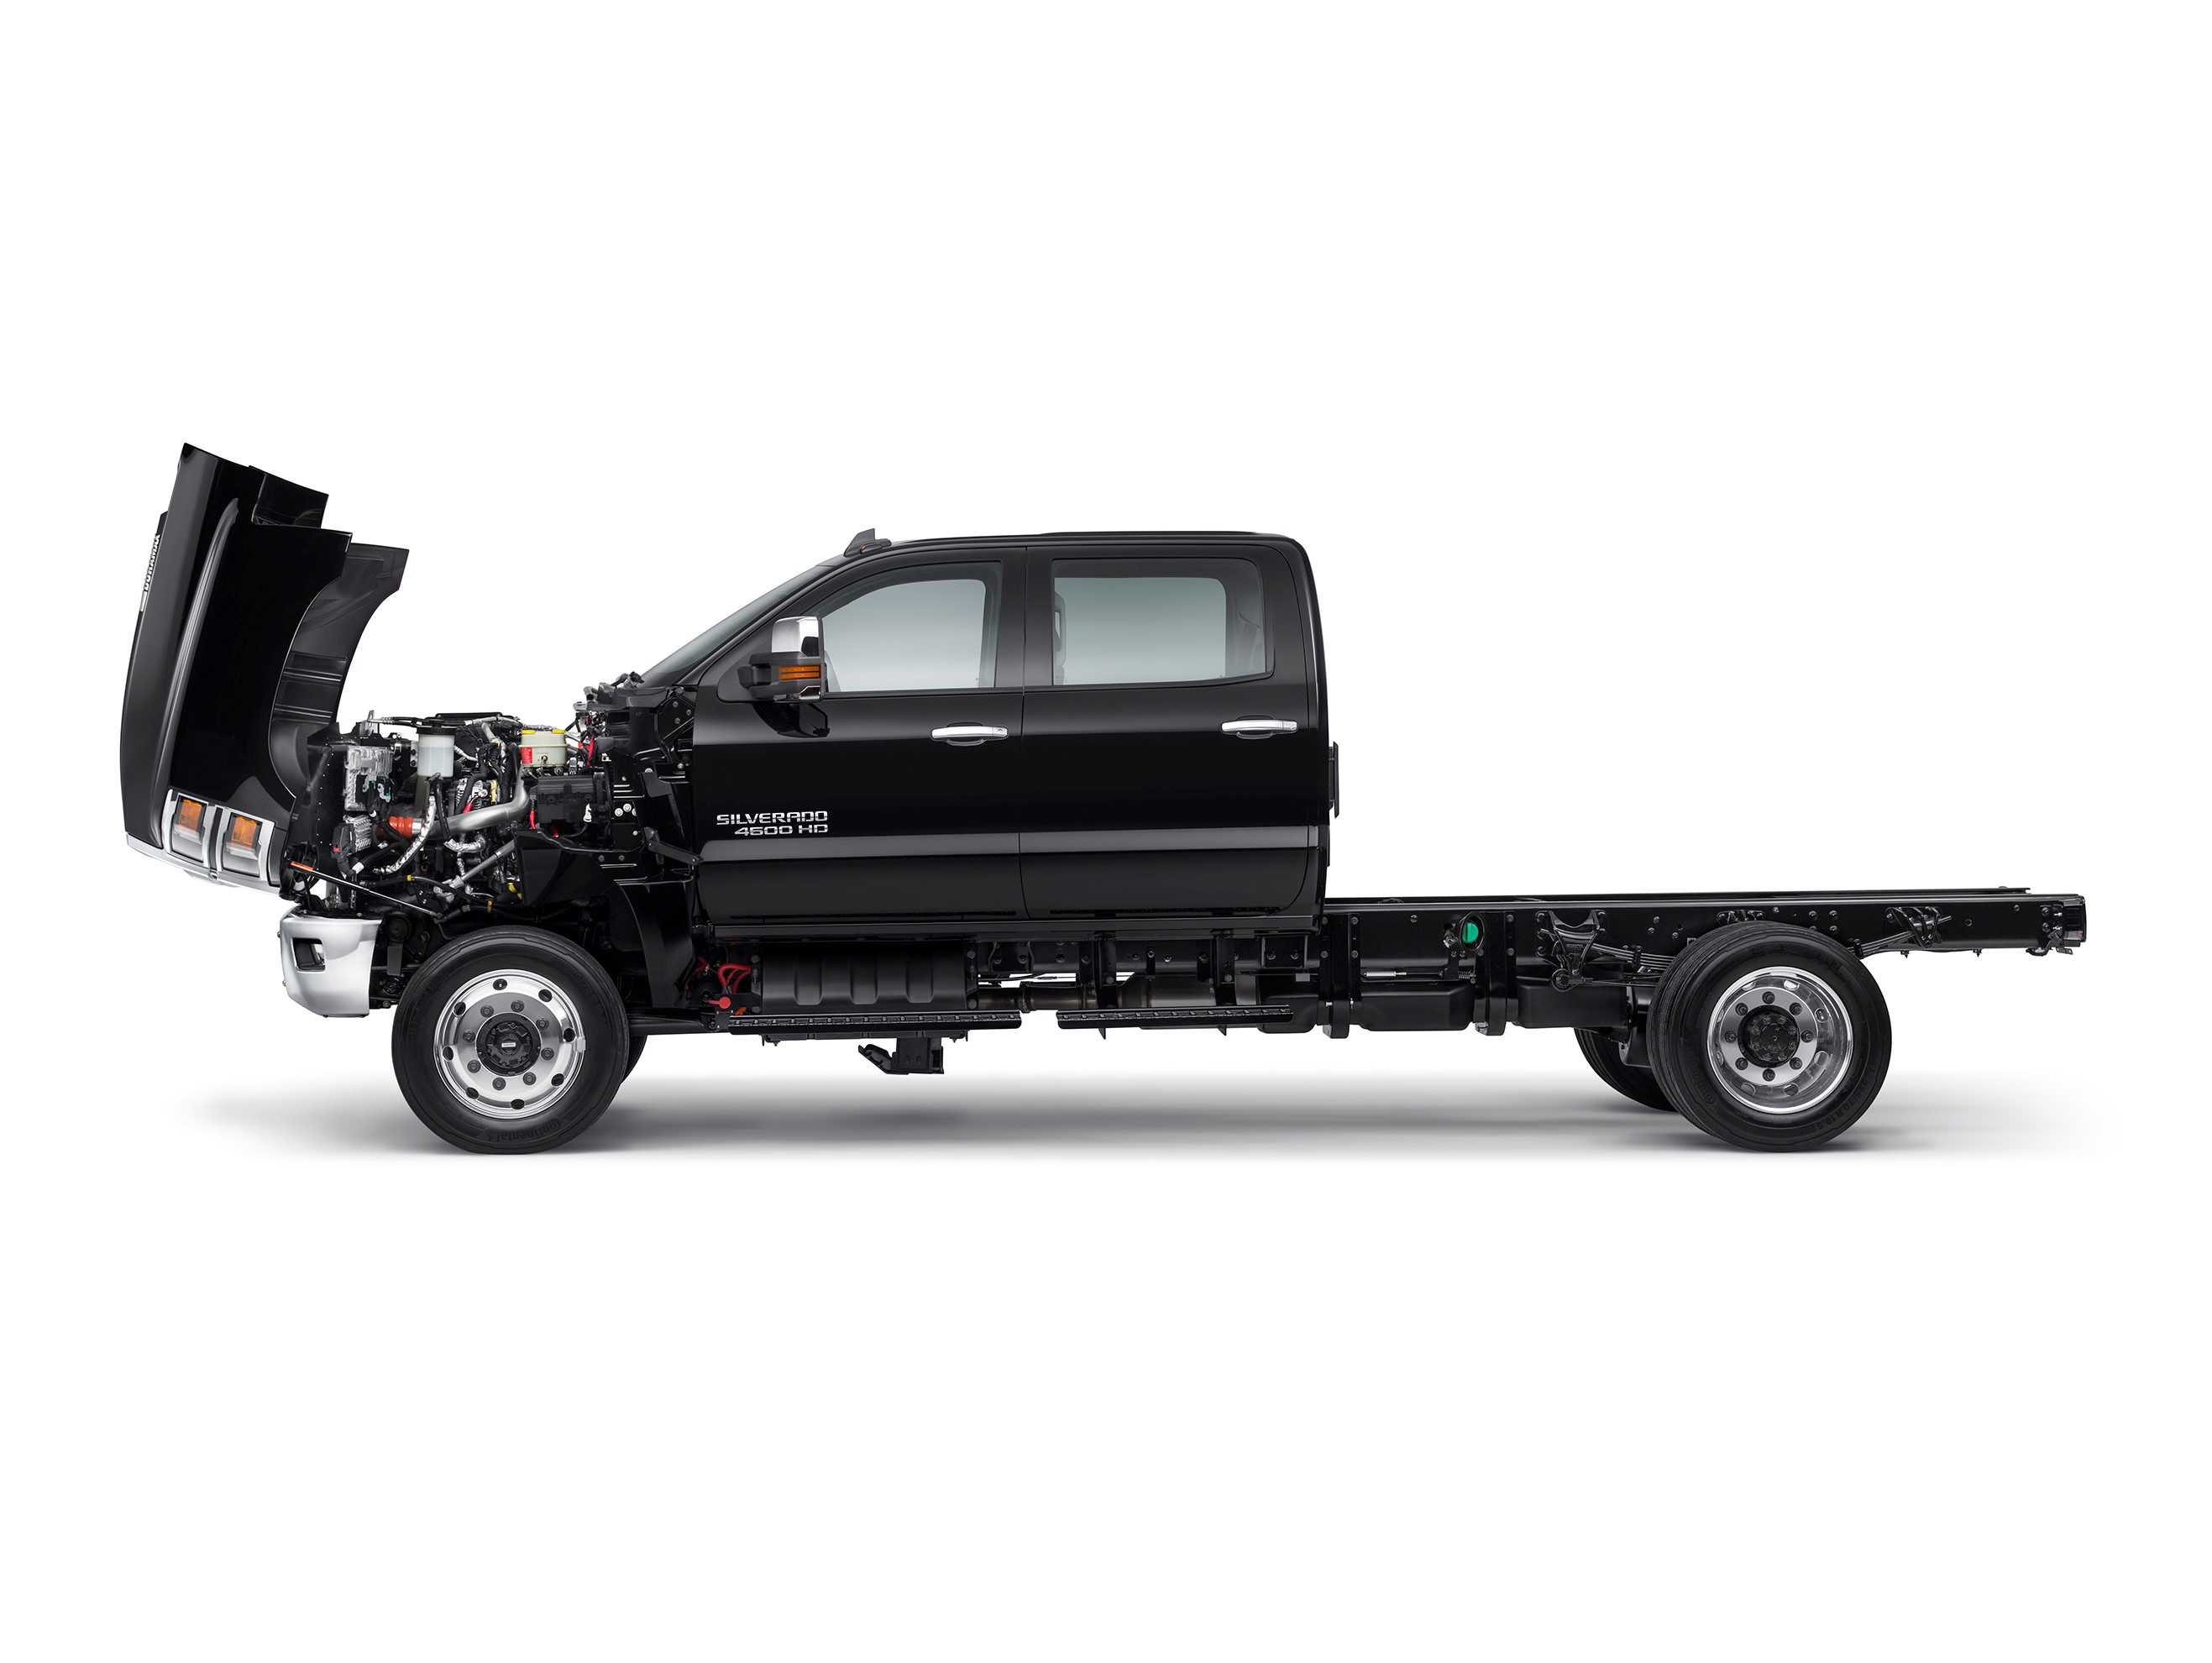 Chevy unveils Silverado 4500HD, 5500HD, surprise 6500HD in ...